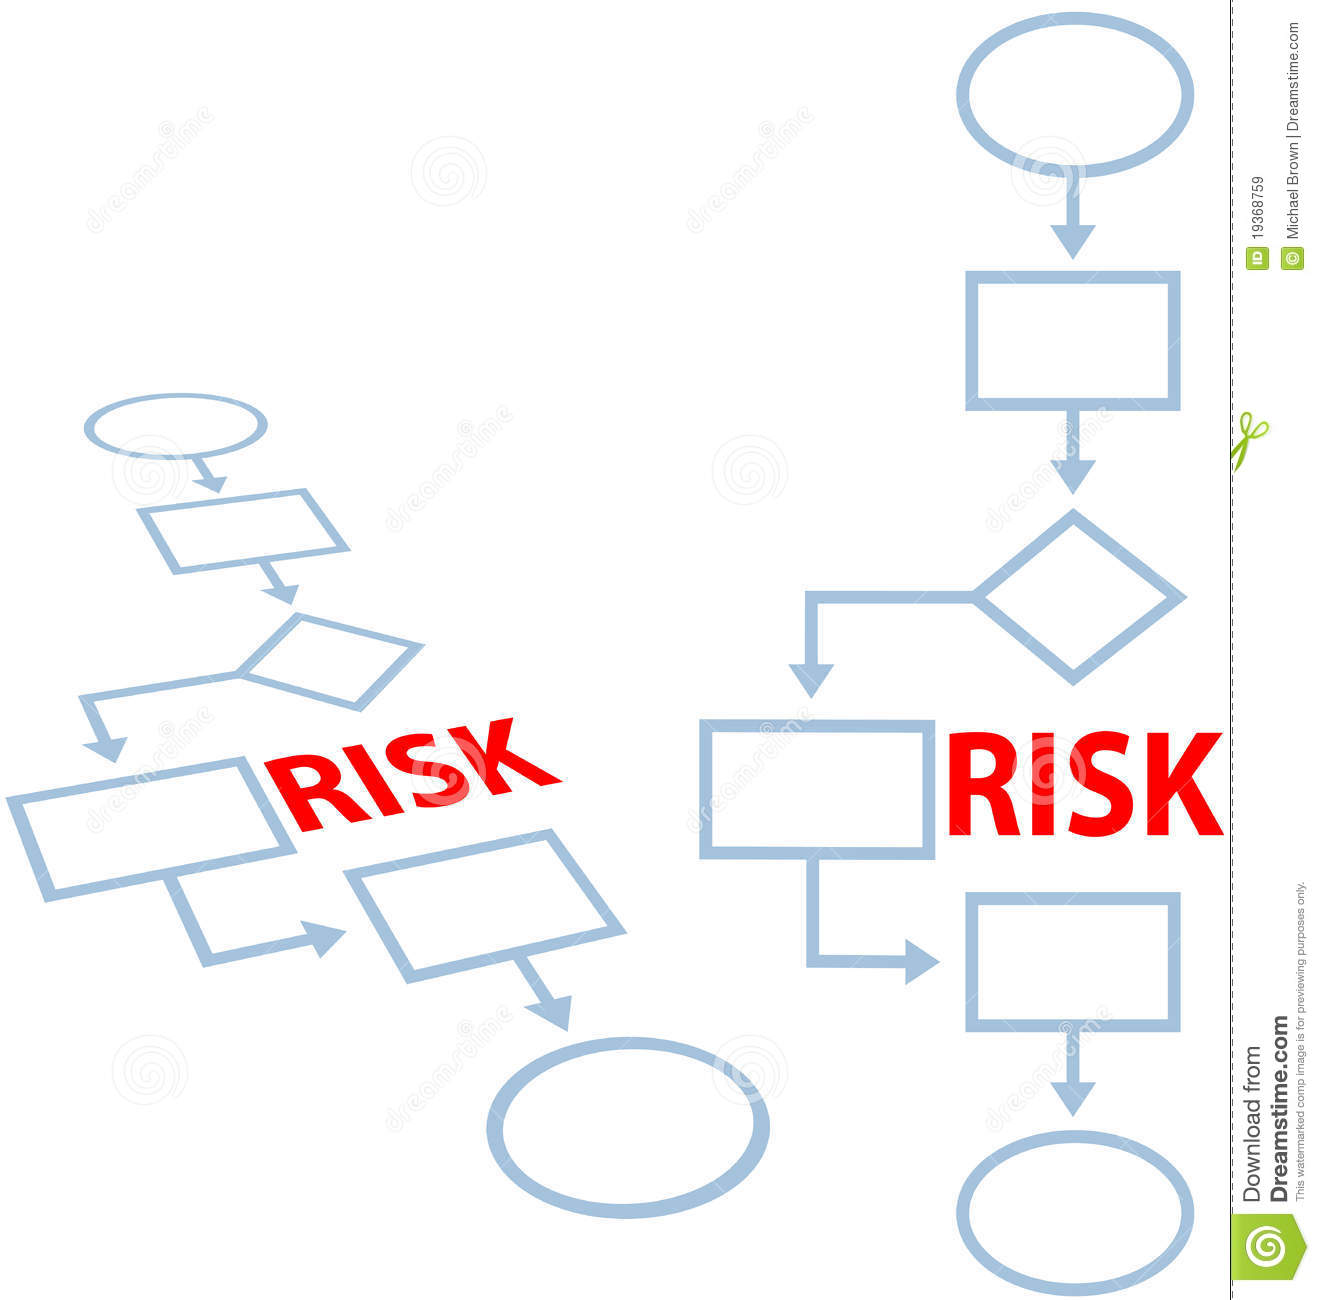 Risk Management and Insurance best college majors for the future